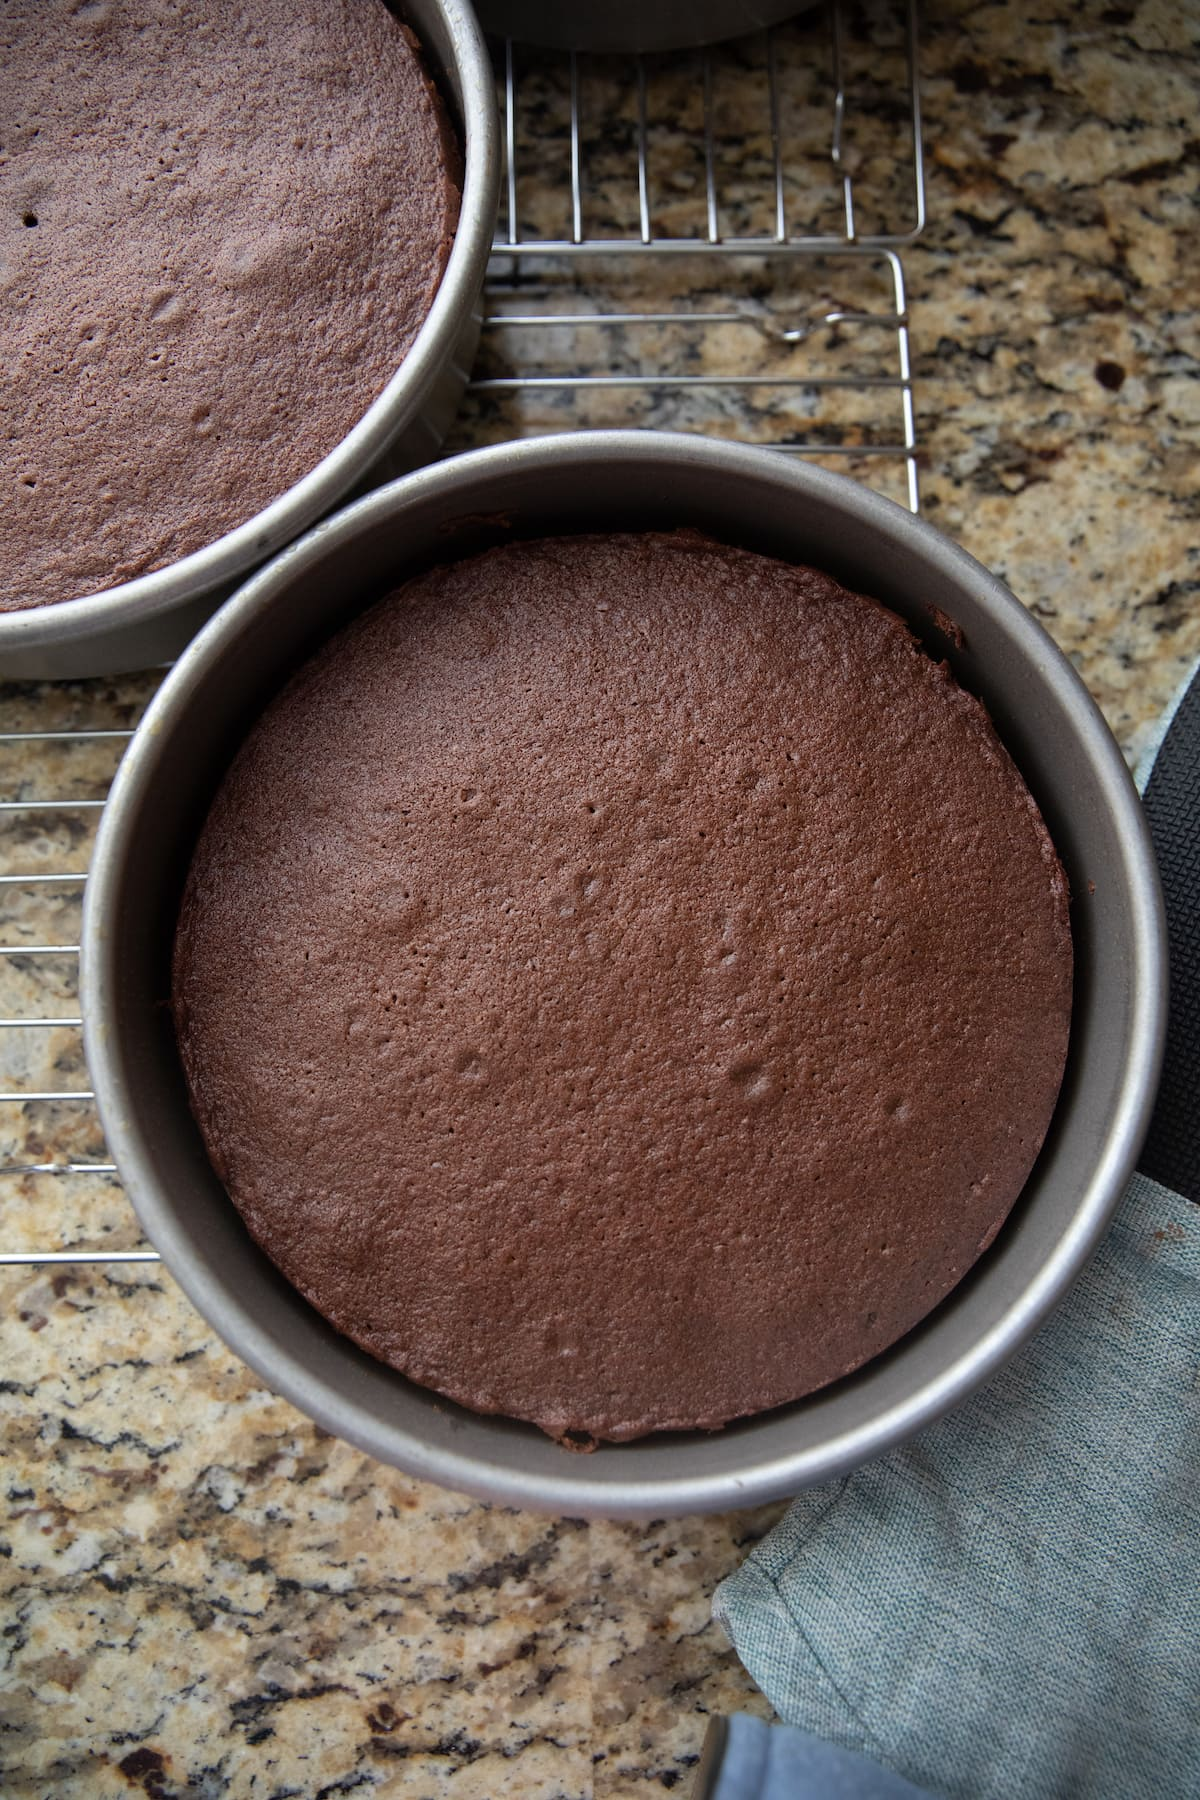 baked chocolate cake in pans